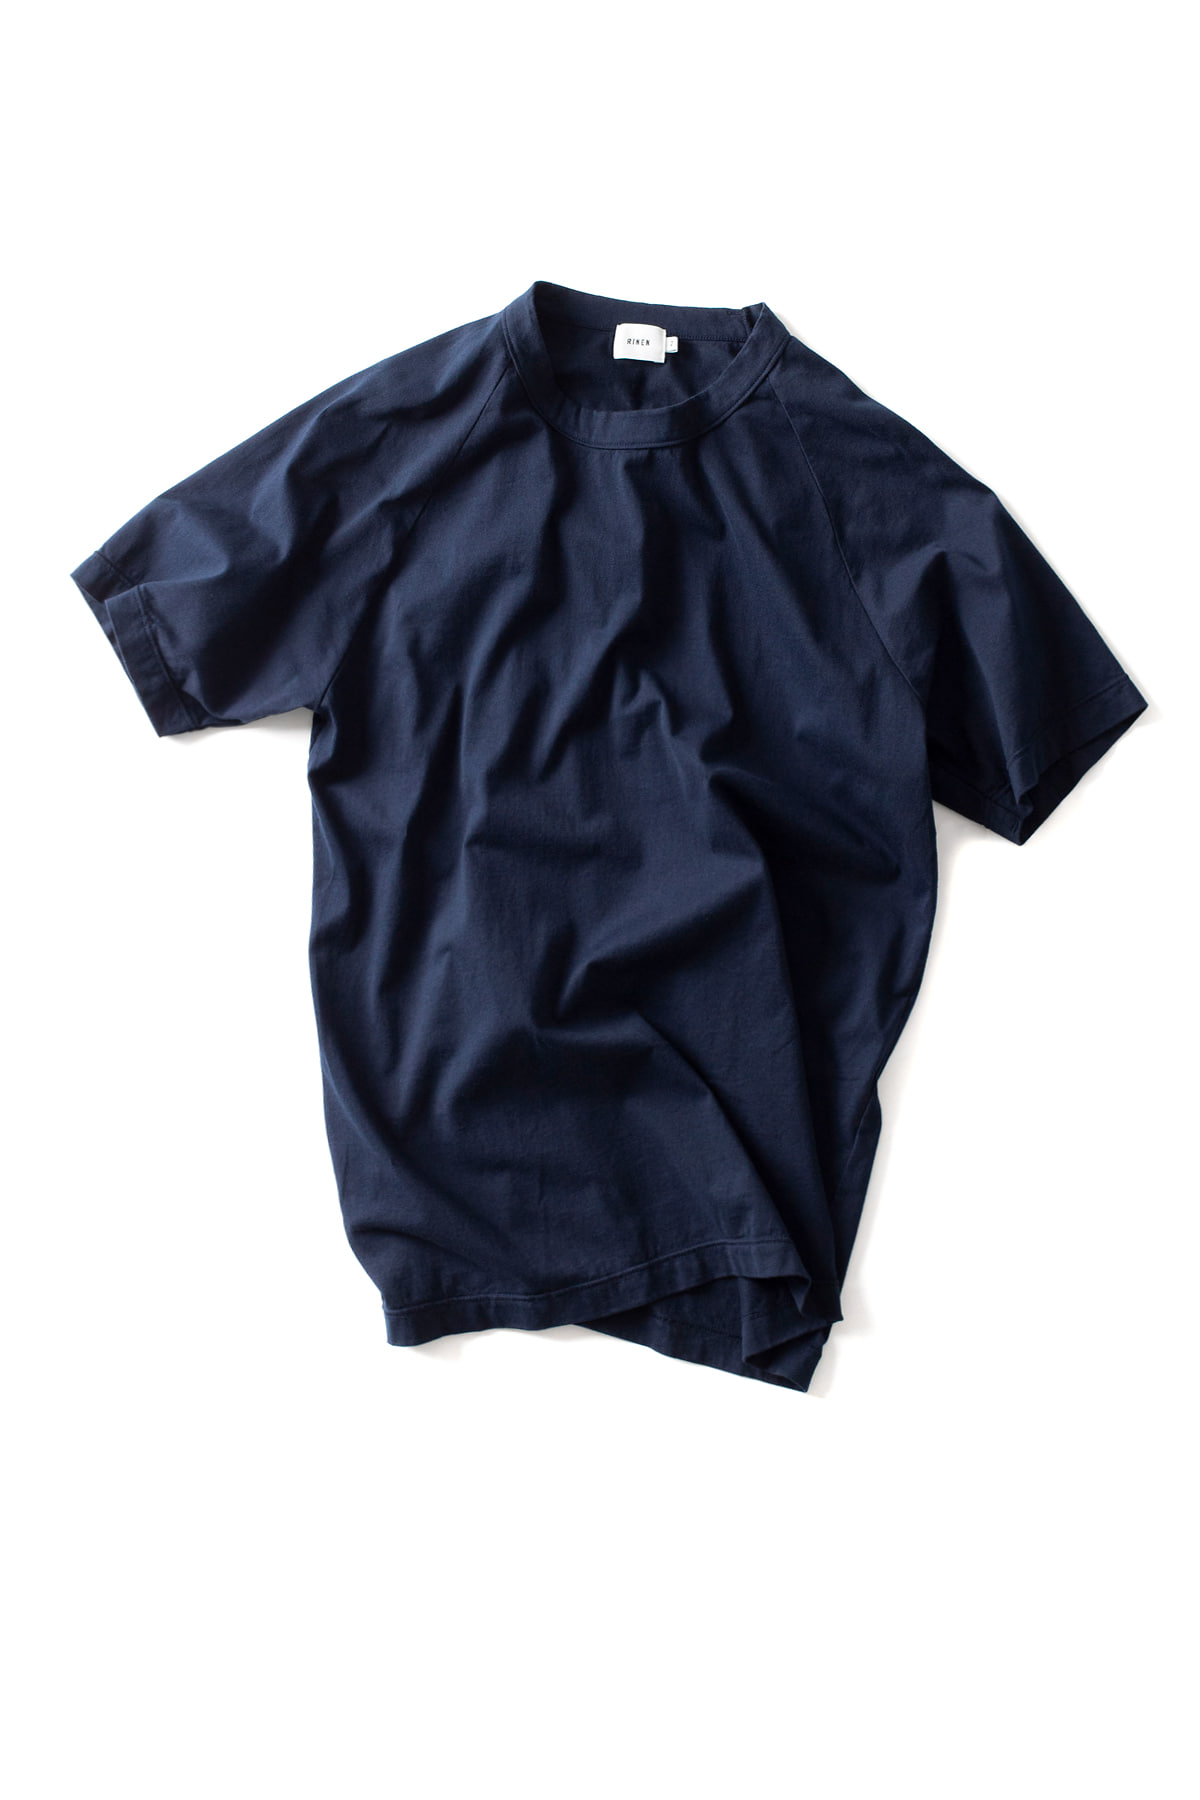 RINEN : Short Sleeved Crewneck 14809 (Navy)